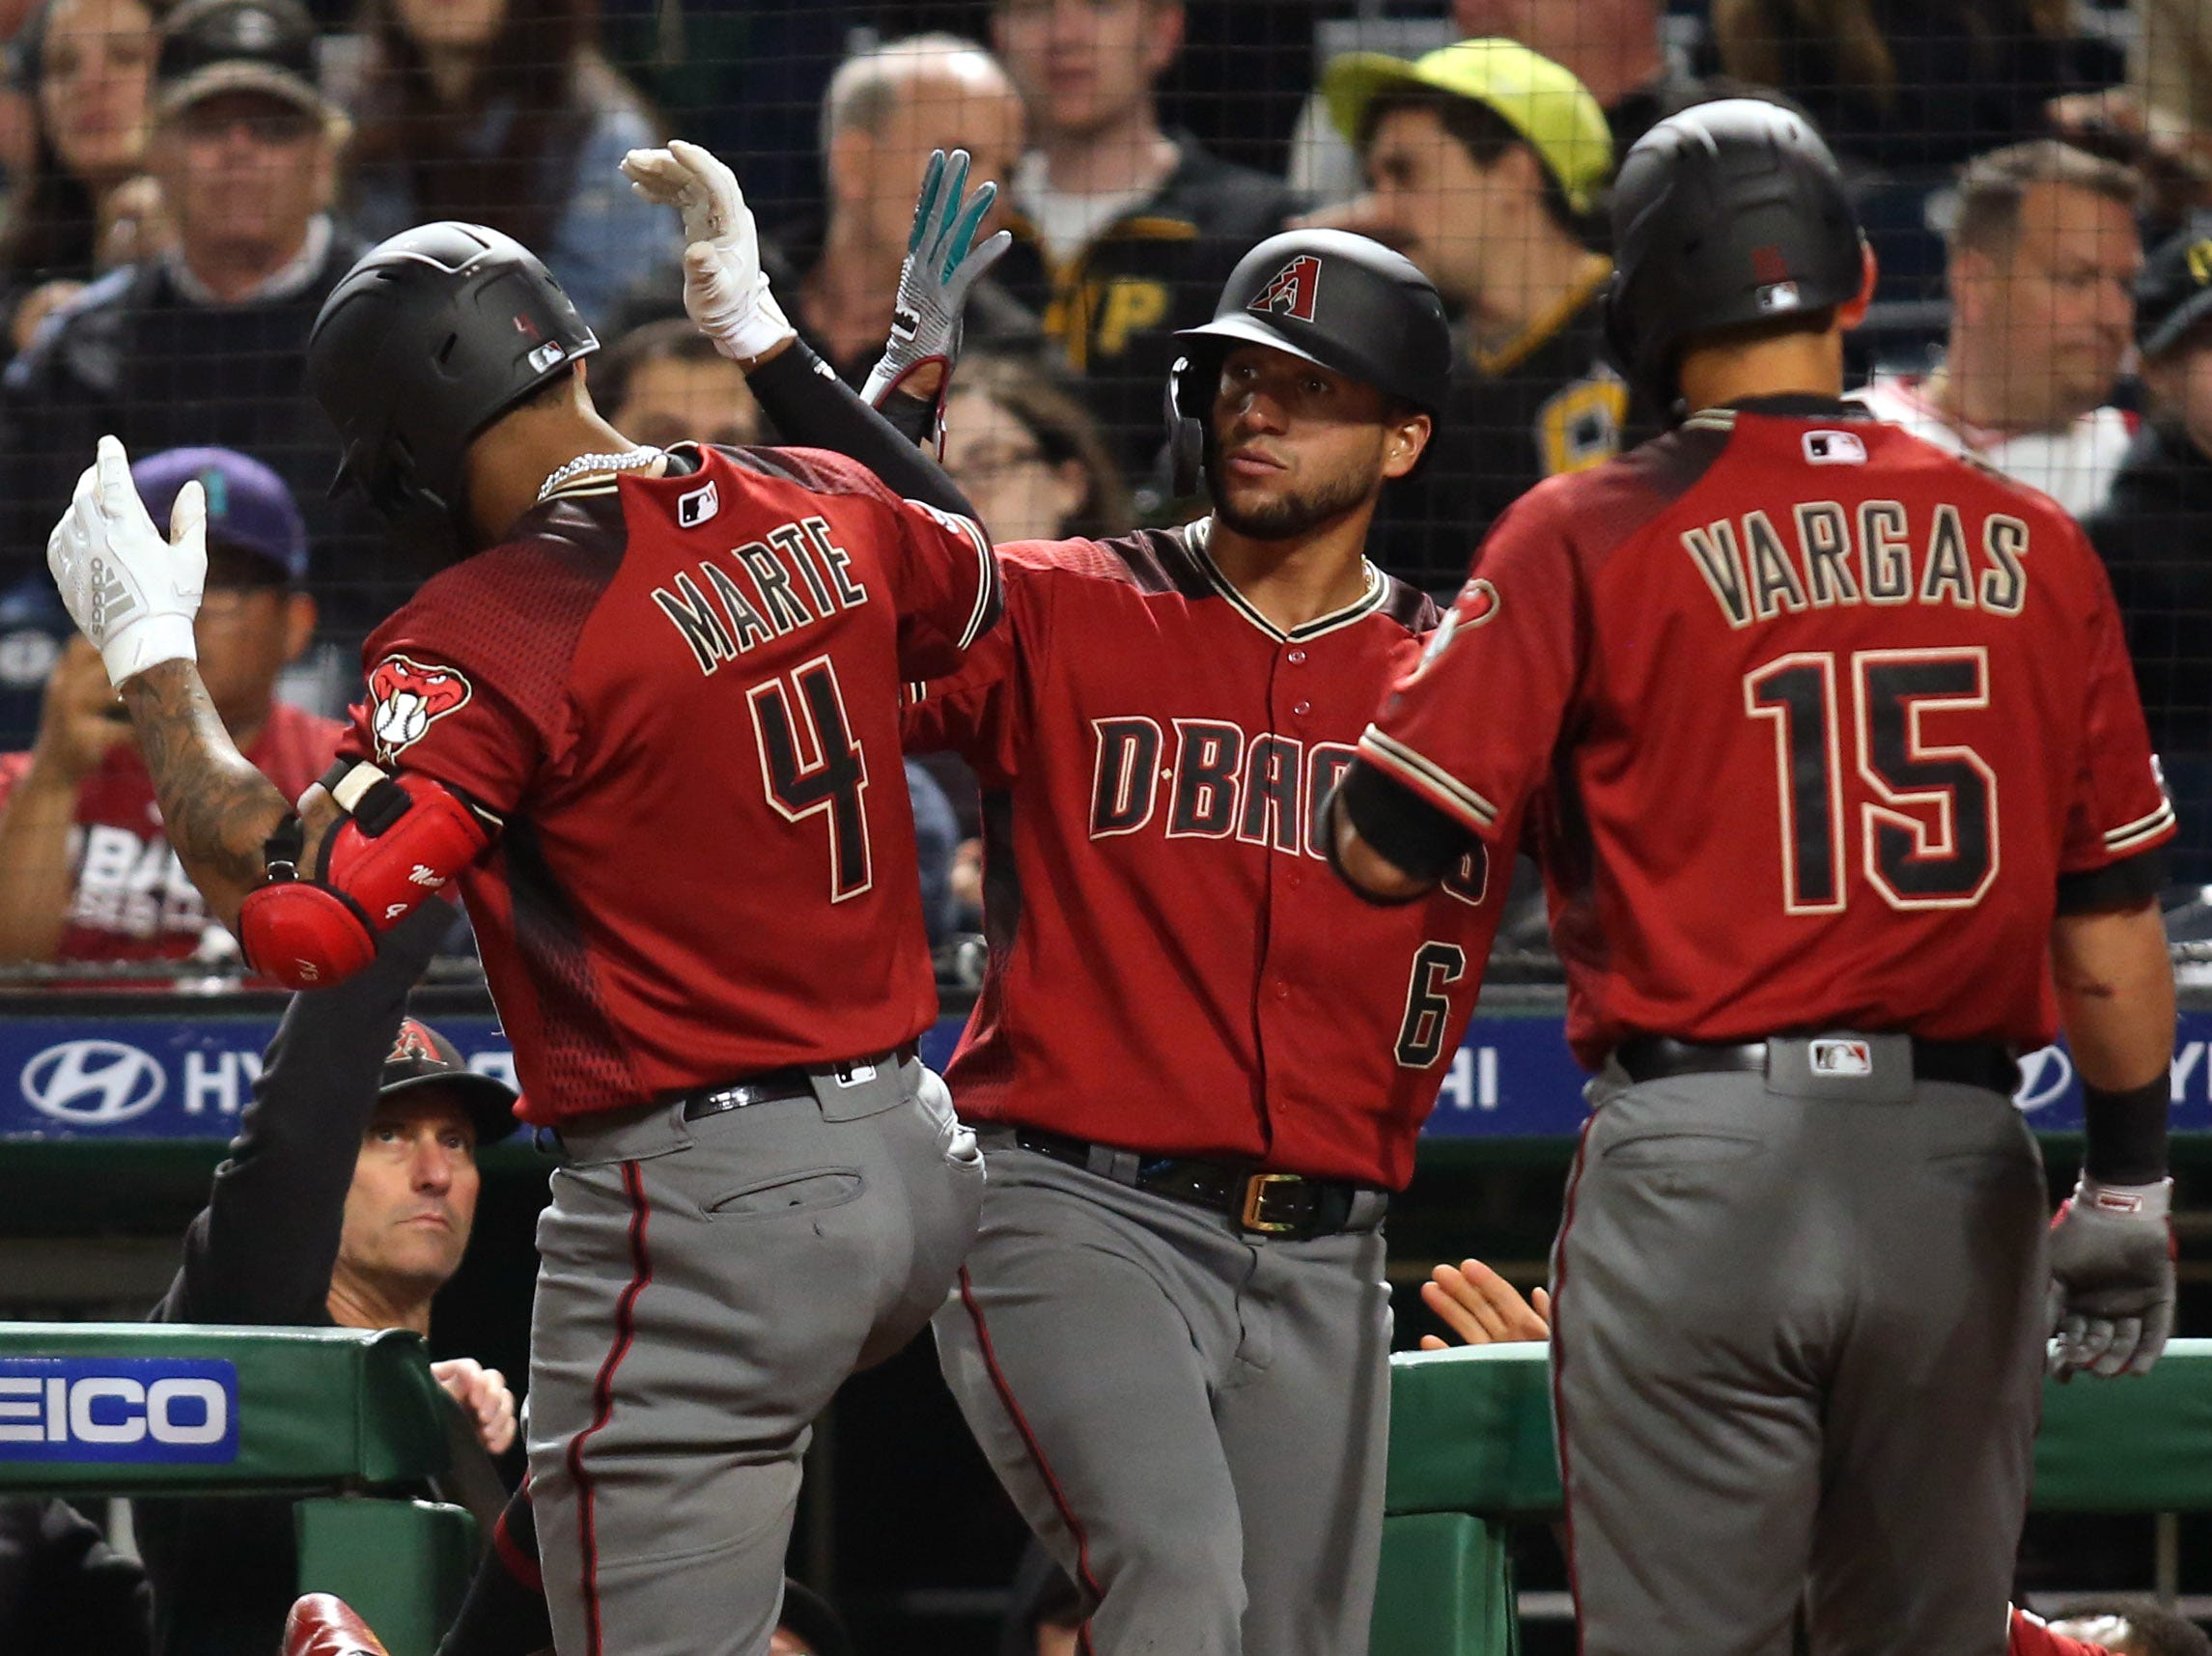 Apr 24, 2019; Pittsburgh, PA, USA;  Arizona Diamondbacks center fielder Ketel Marte (4) celebrates with left fielder David Peralta (6) and third baseman Ildemaro Vargas (15) after hitting a three run home run against the Pittsburgh Pirates during the eighth inning at PNC Park. Mandatory Credit: Charles LeClaire-USA TODAY Sports